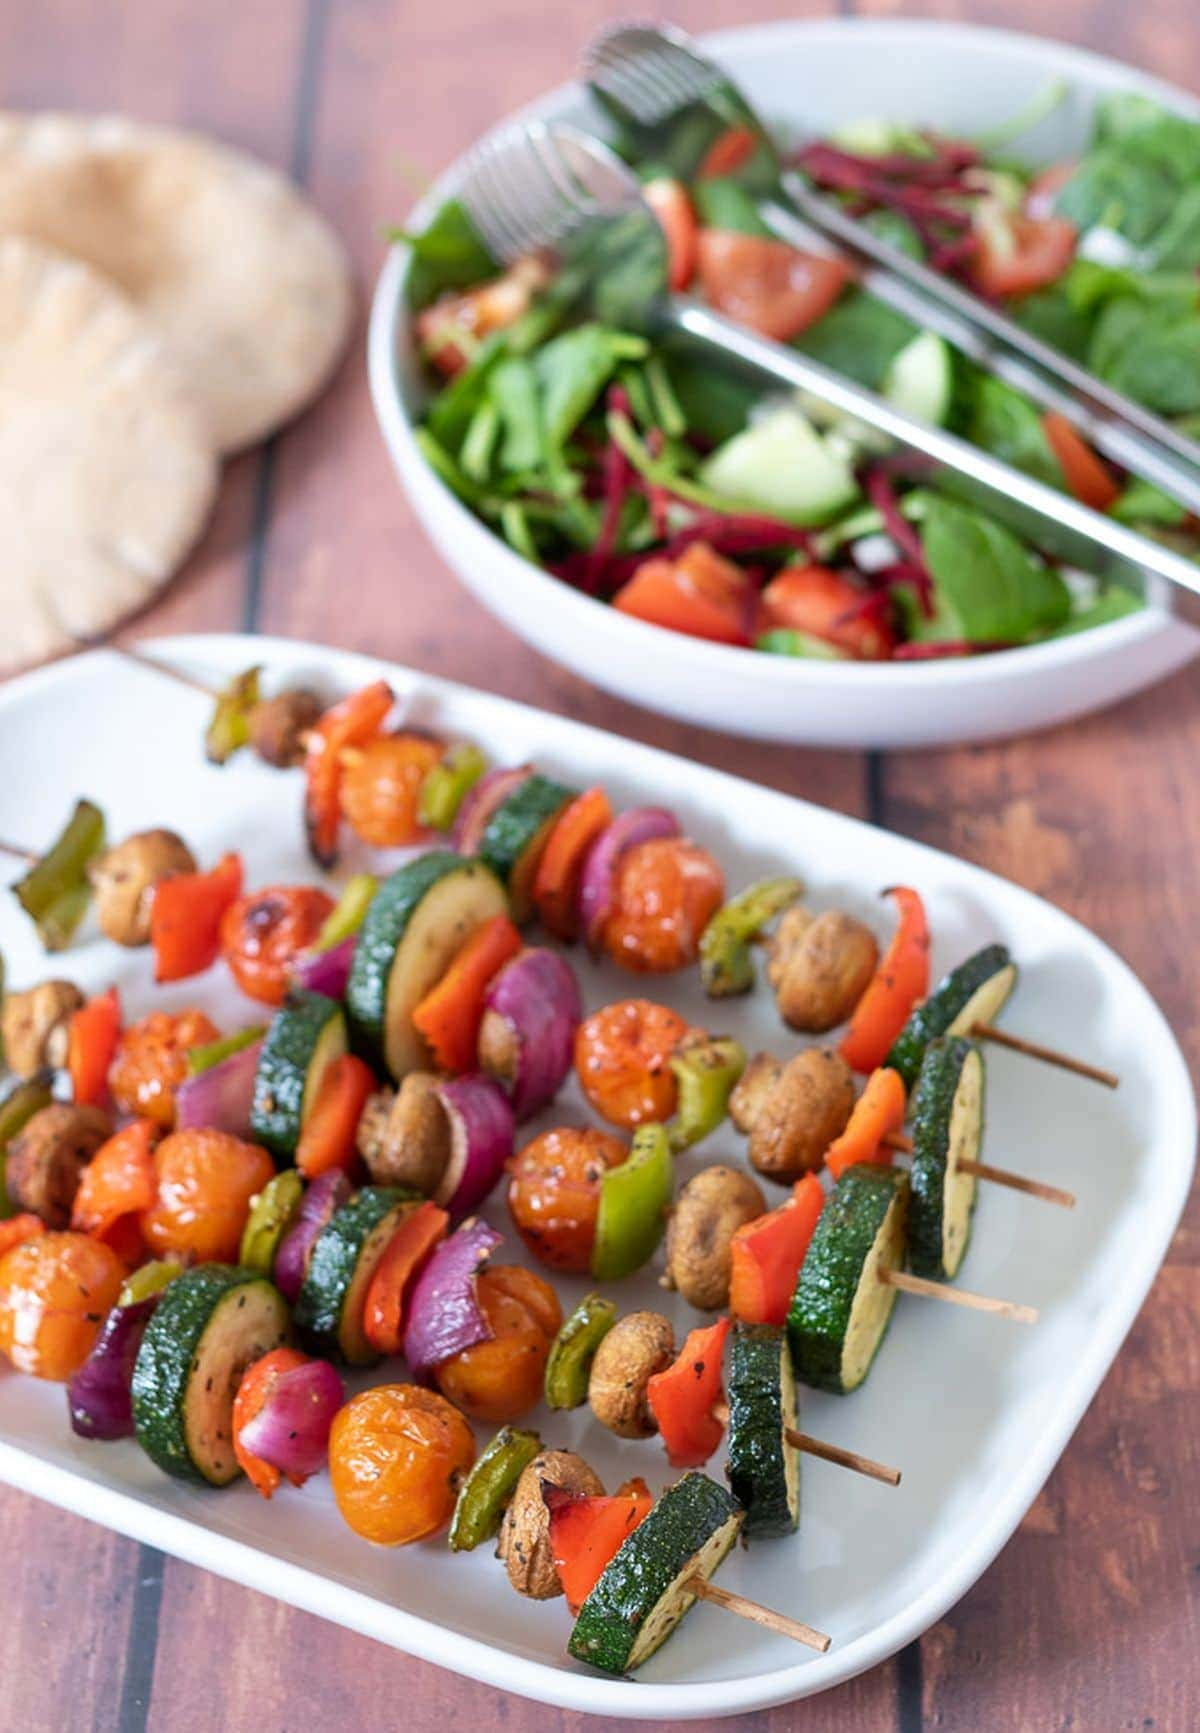 Grilled vegetable skewers laid on a serving dish with a side salad and 2 pita breads in the background.